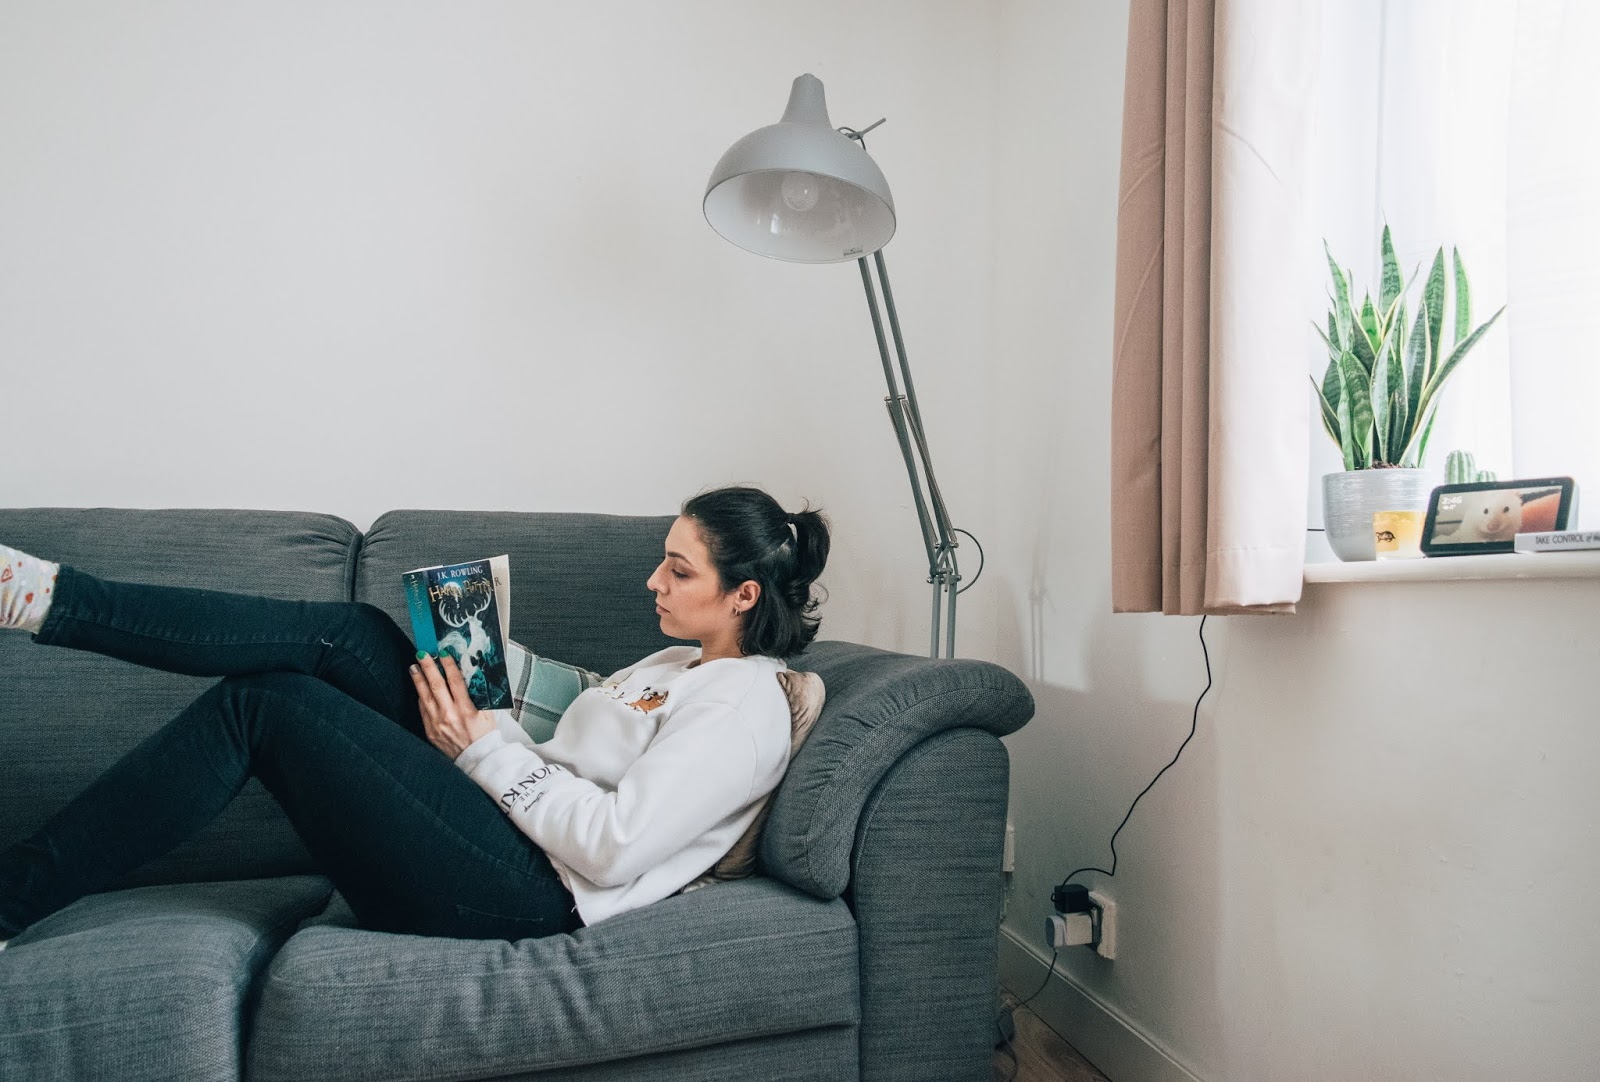 A girl lounging on a grey sofa reading a book with her legs crossed at the knee.